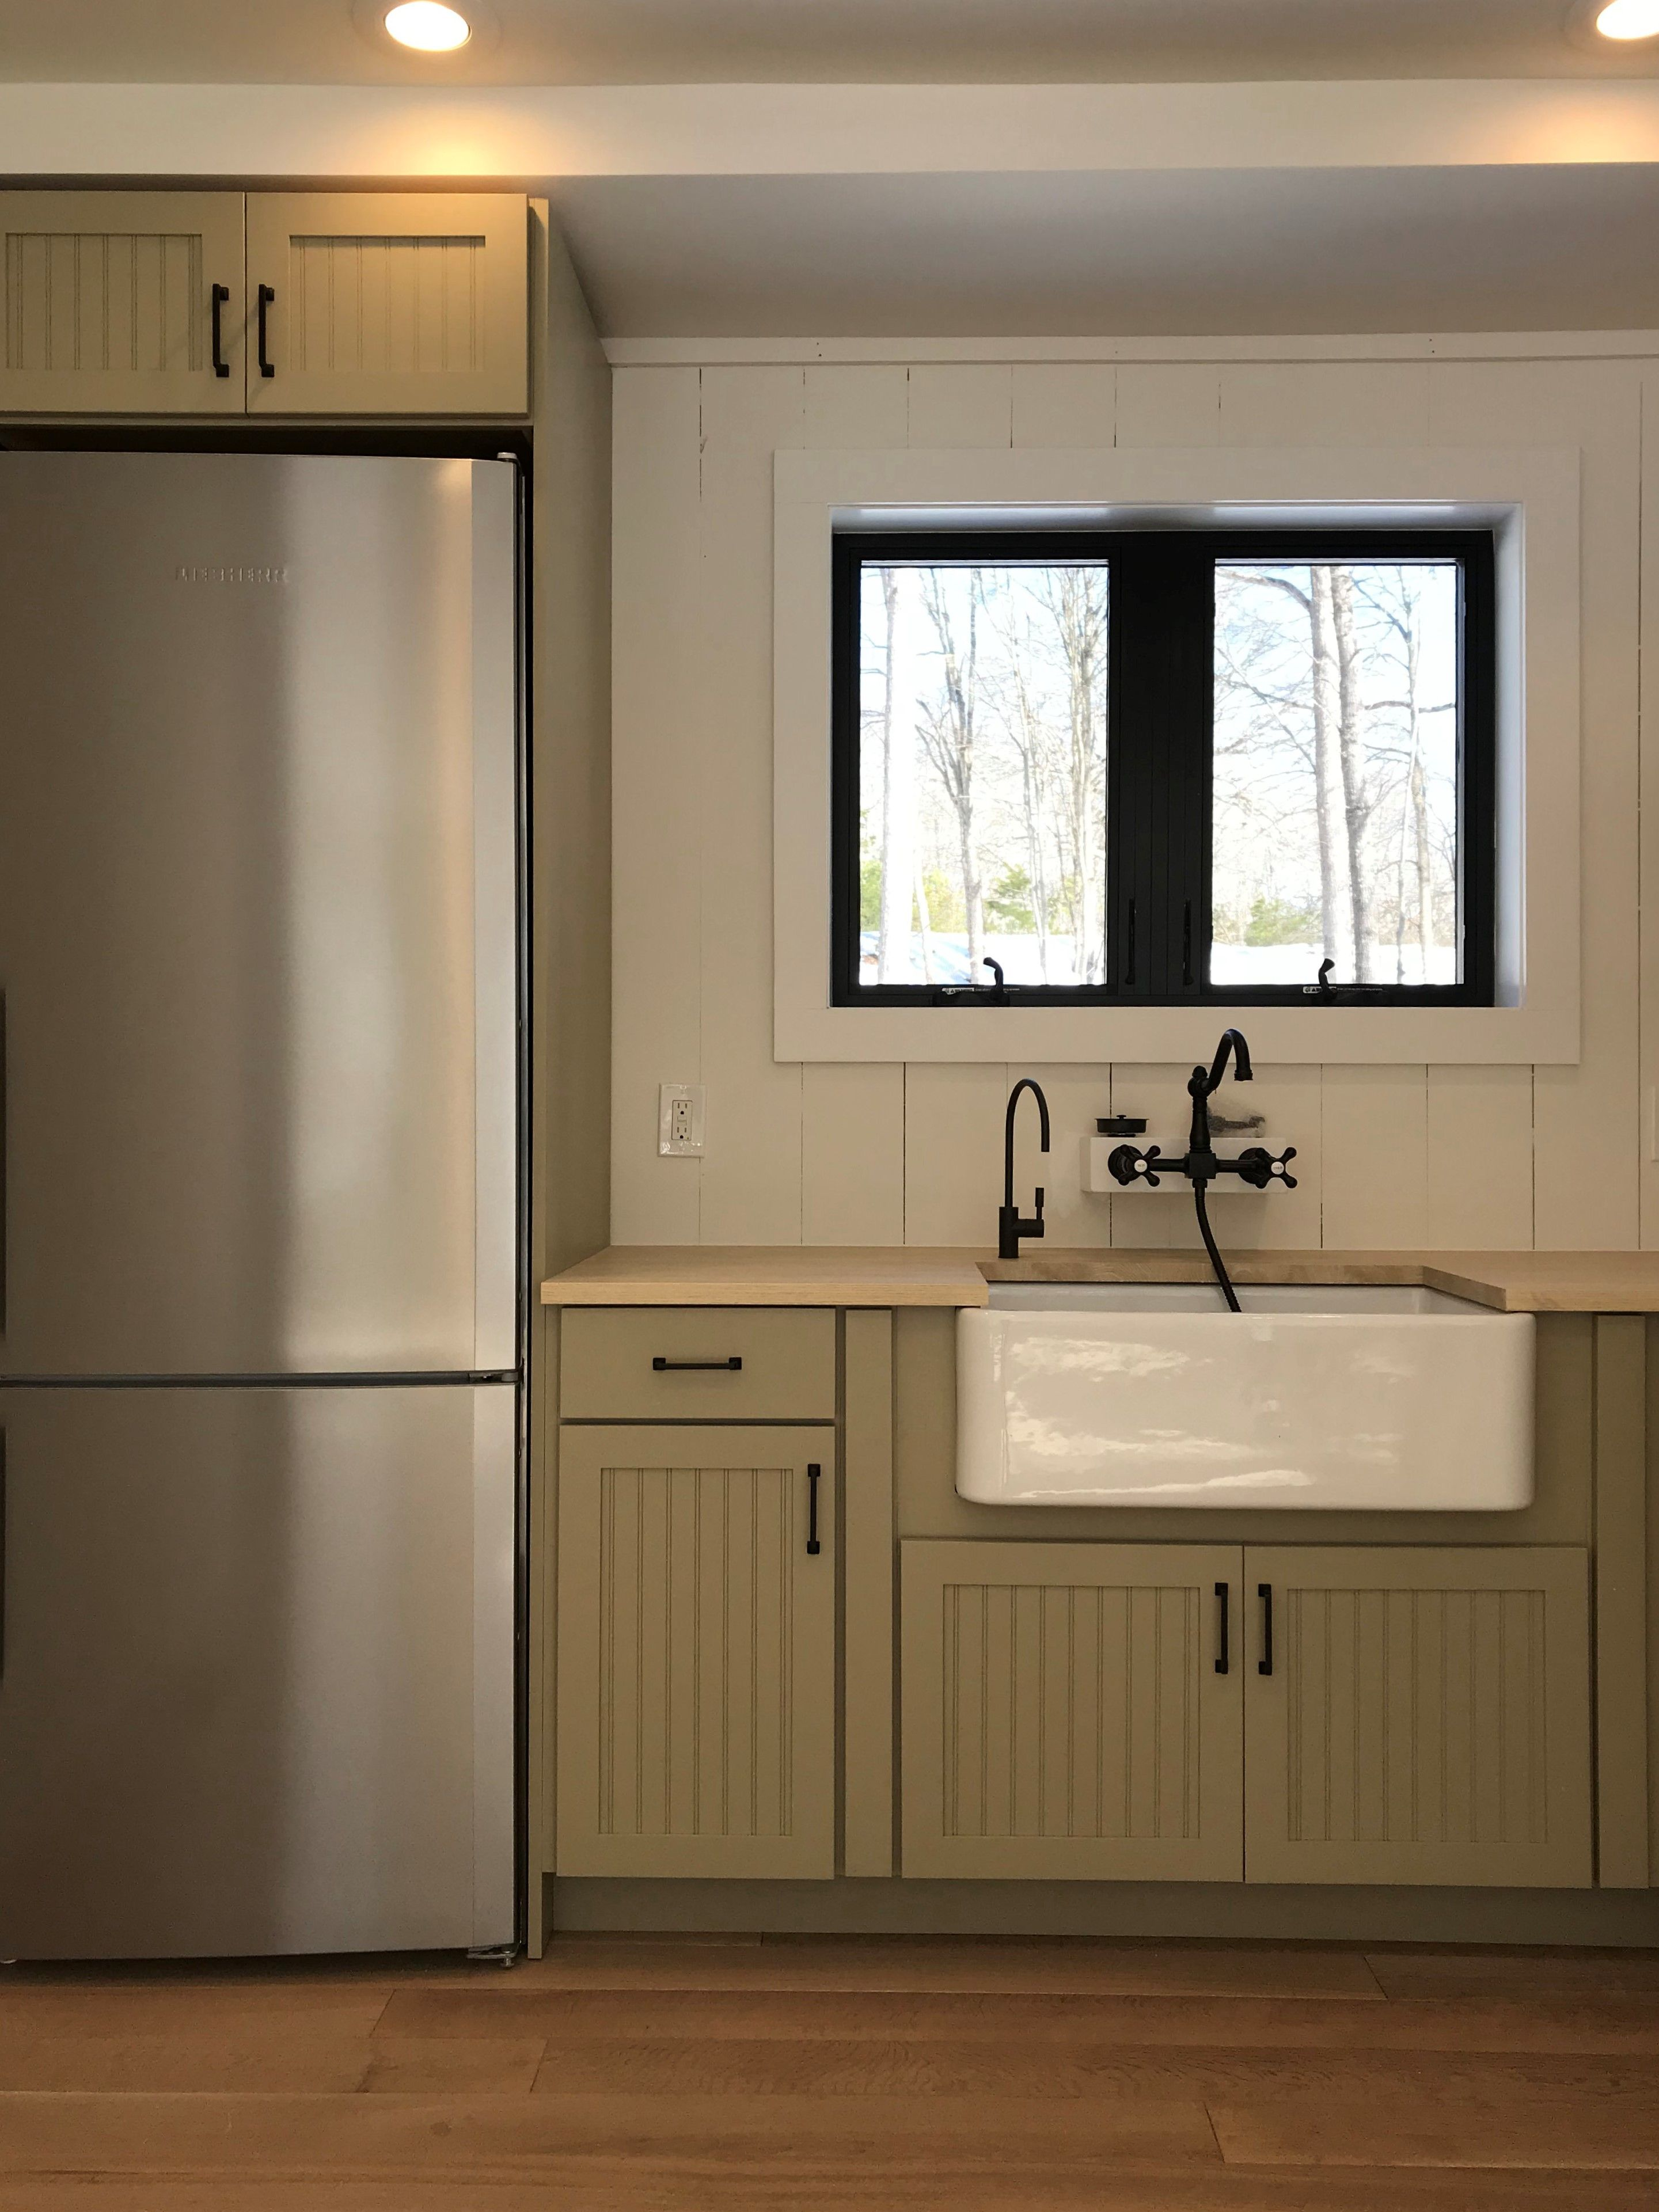 Cabinet colors inspired by nature with bold hardware # ...